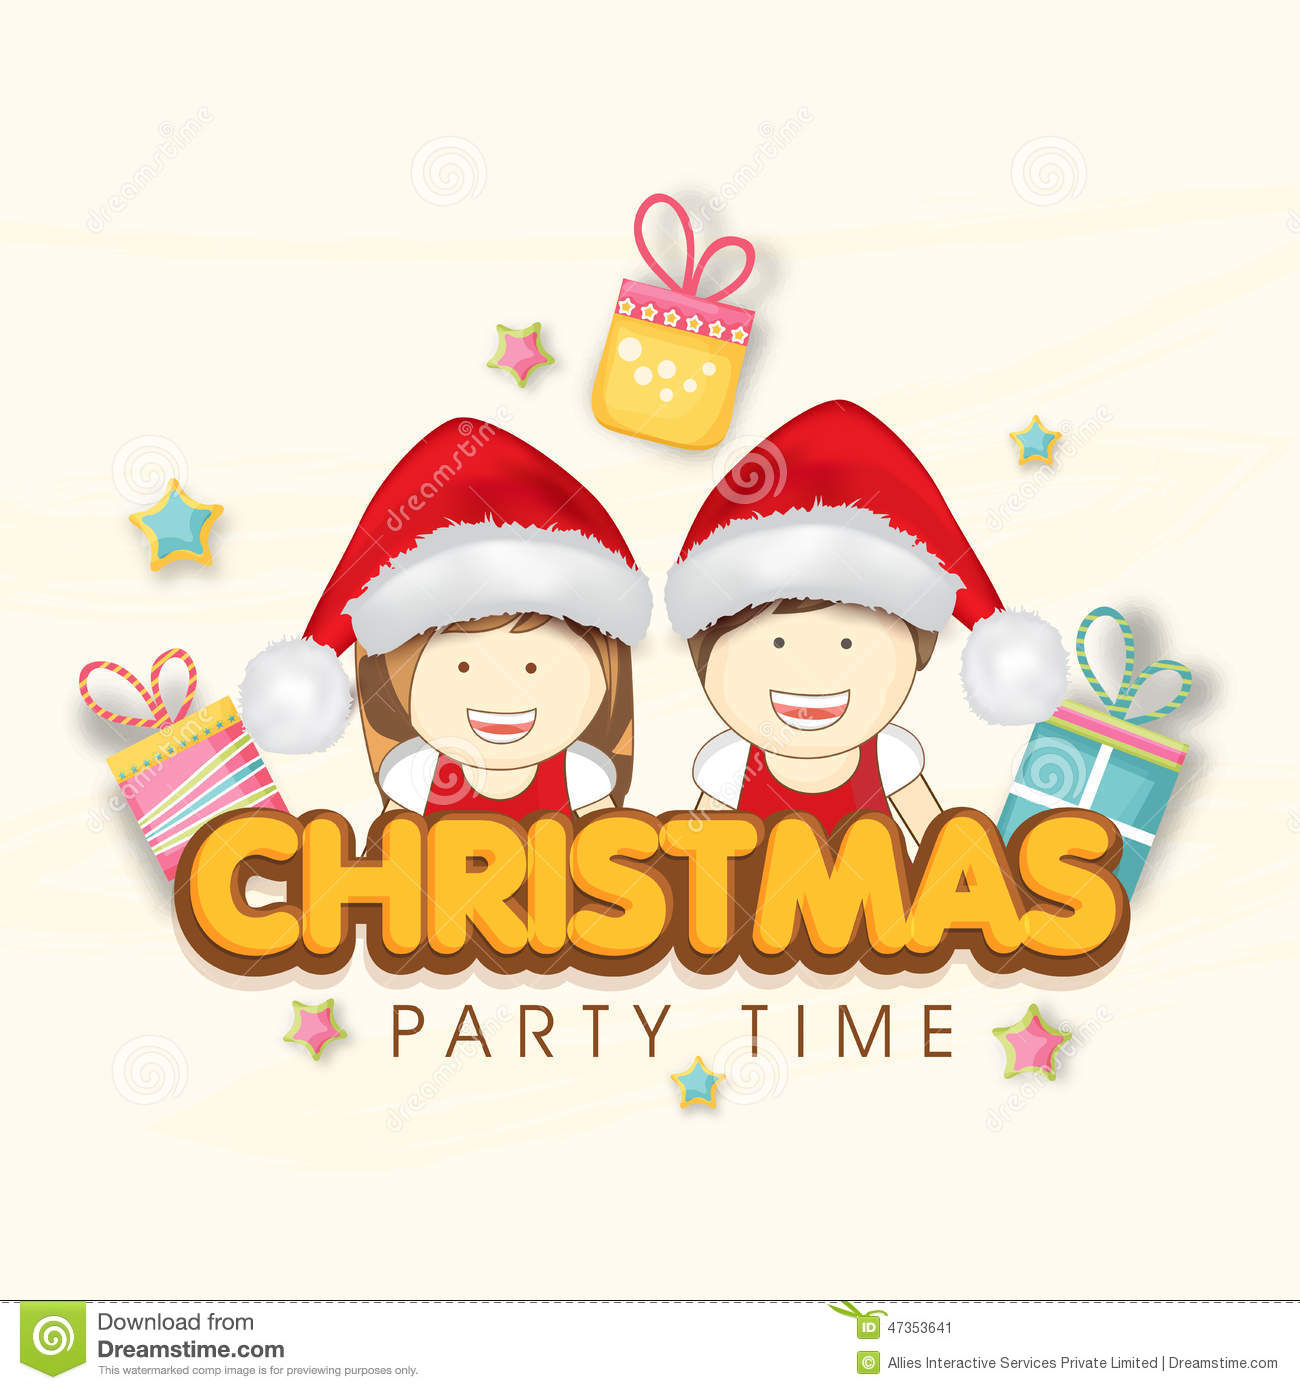 Merry christmas party celebration invitation card design stock merry christmas party celebration invitation card design kristyandbryce Image collections